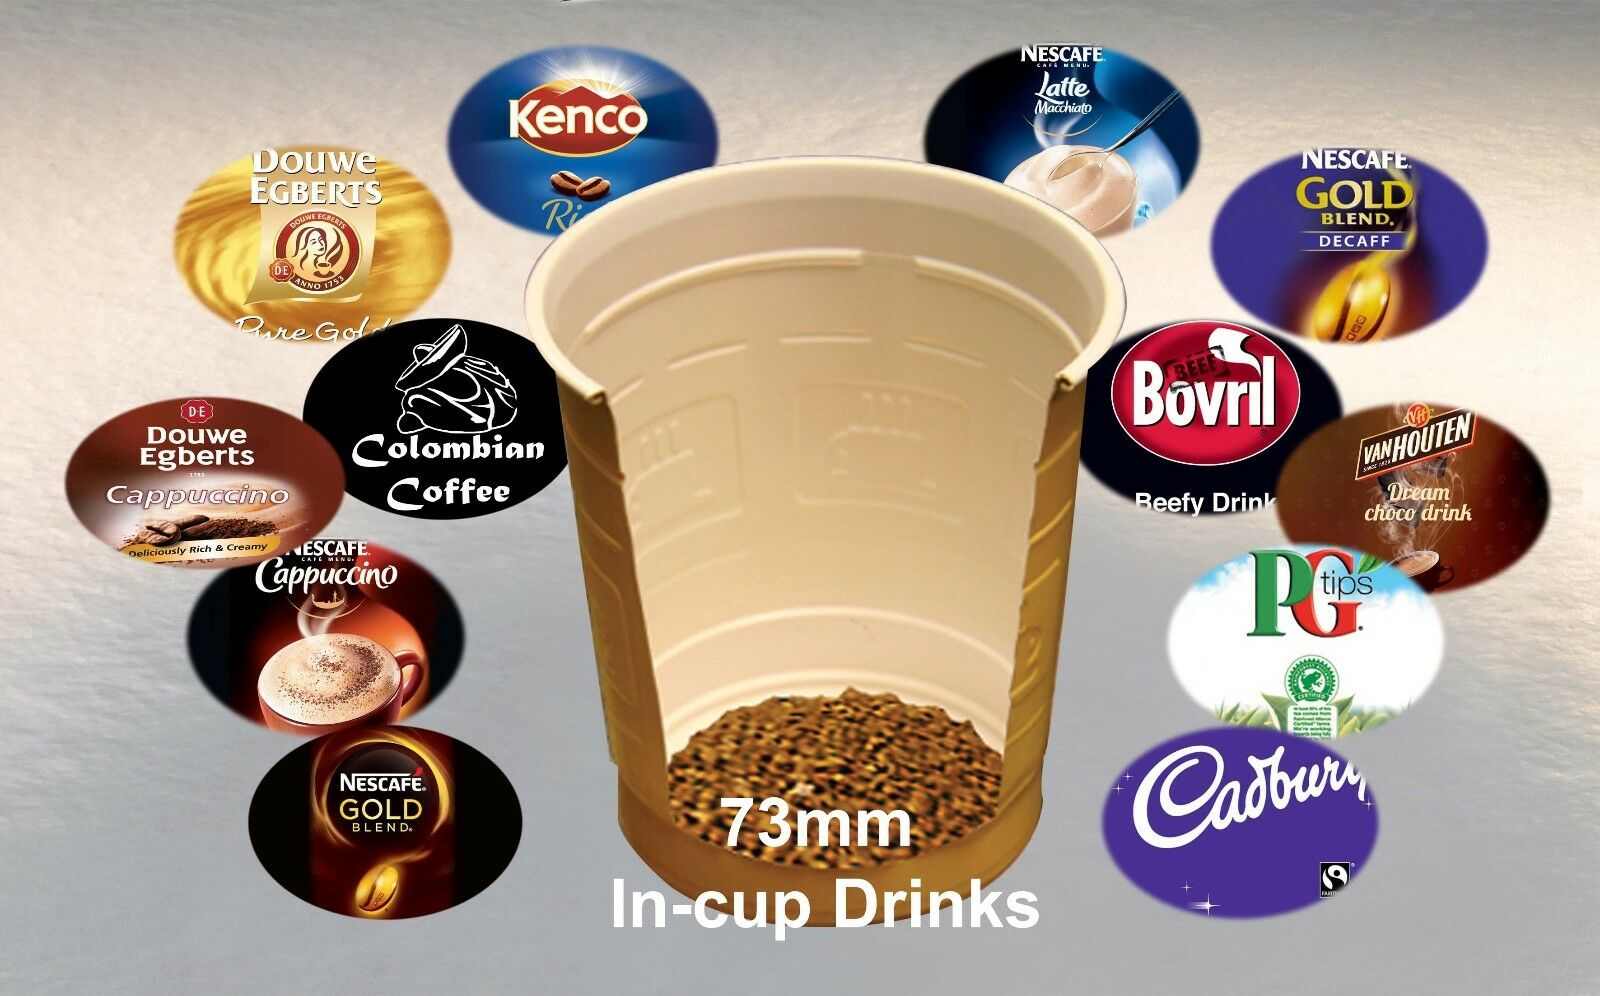 Douwe Egberts White Coffee 73mm In-cup vending drinks